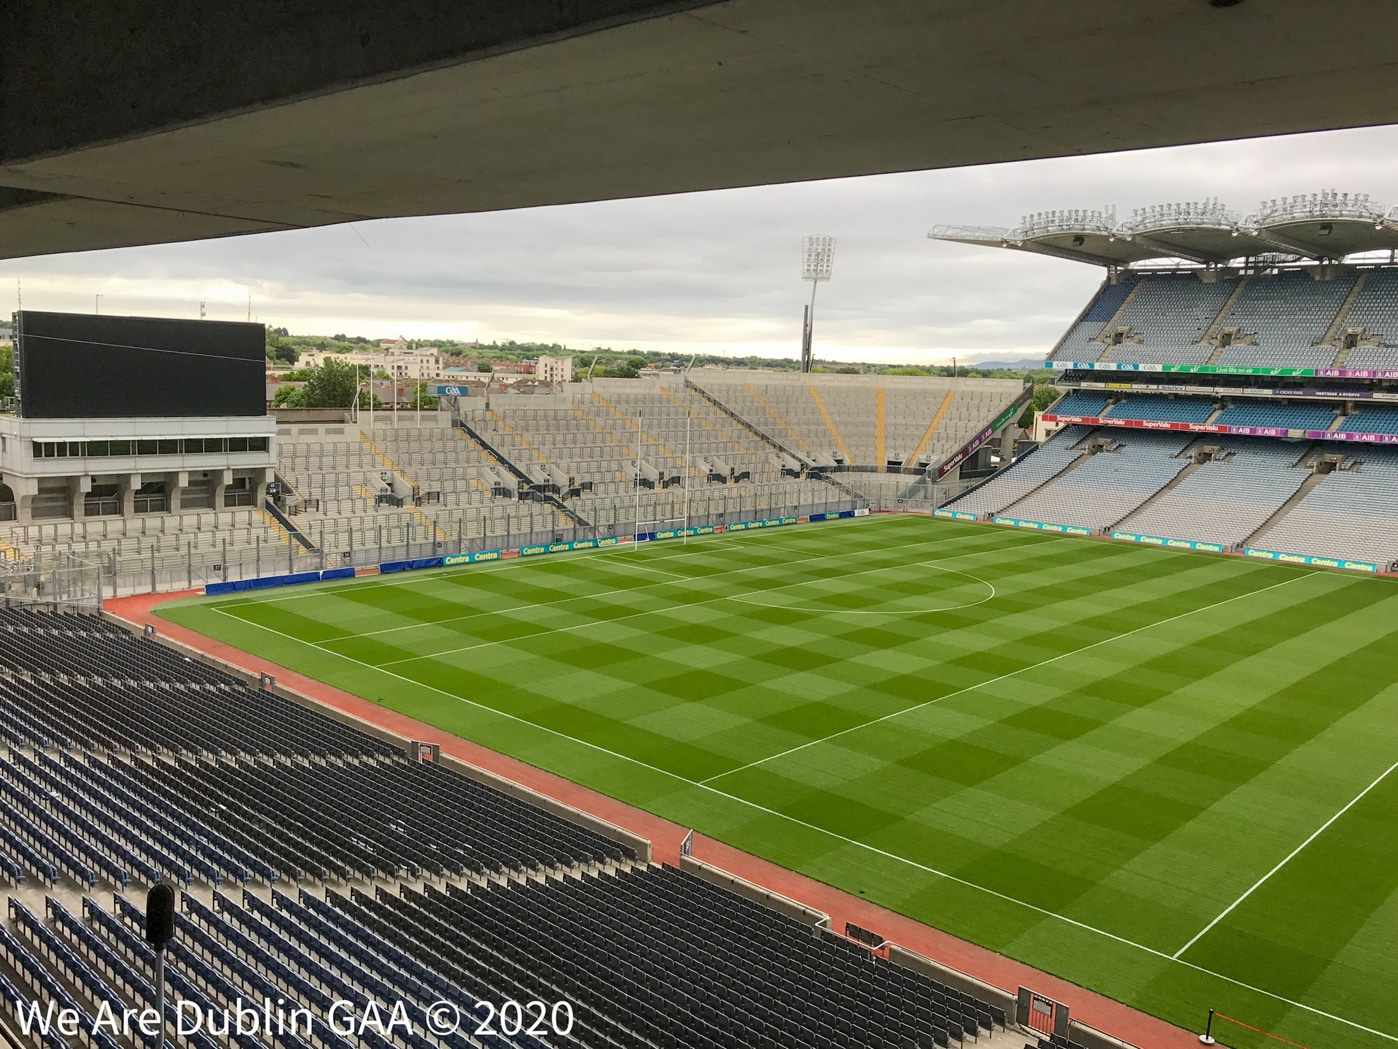 GAA headquarters Croke Park where the GAA, SuperValu and Centra launched a new initiative'Club Together' to help elderly communities during the Covid-19 health crisis.